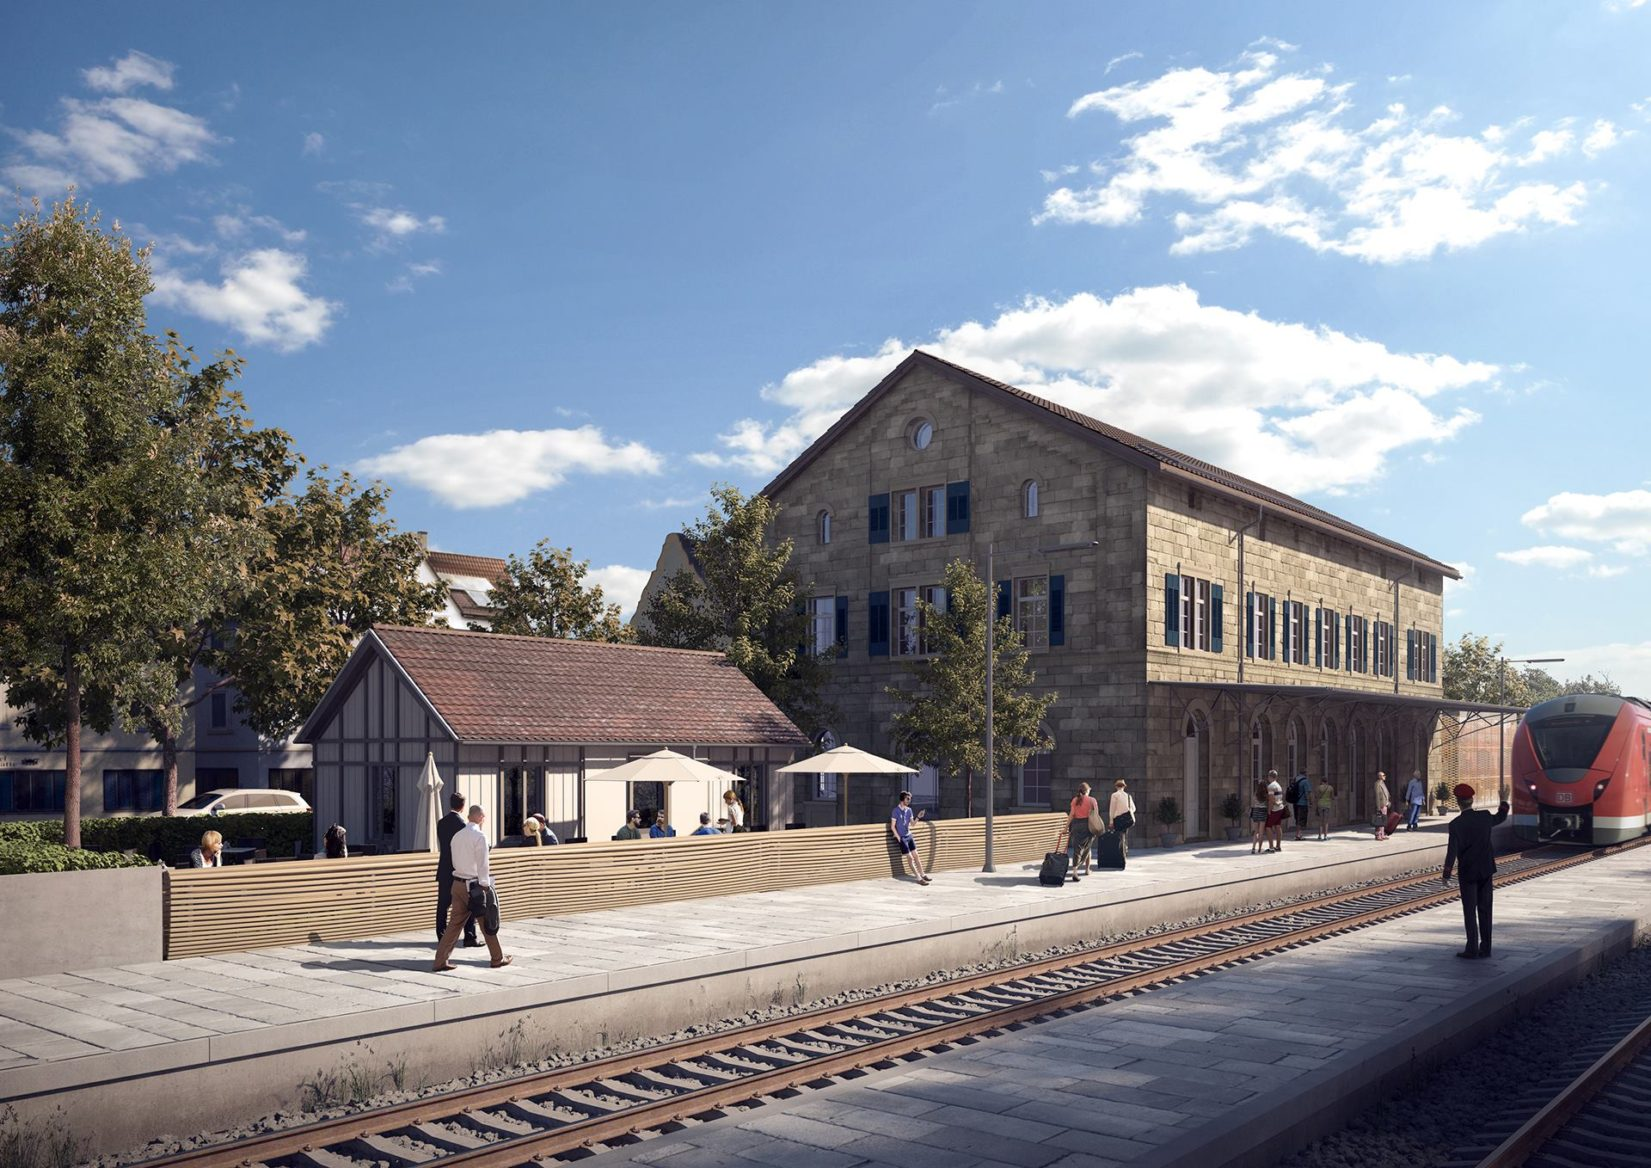 Exterior 3D Visualization of Rottenburg Train Station